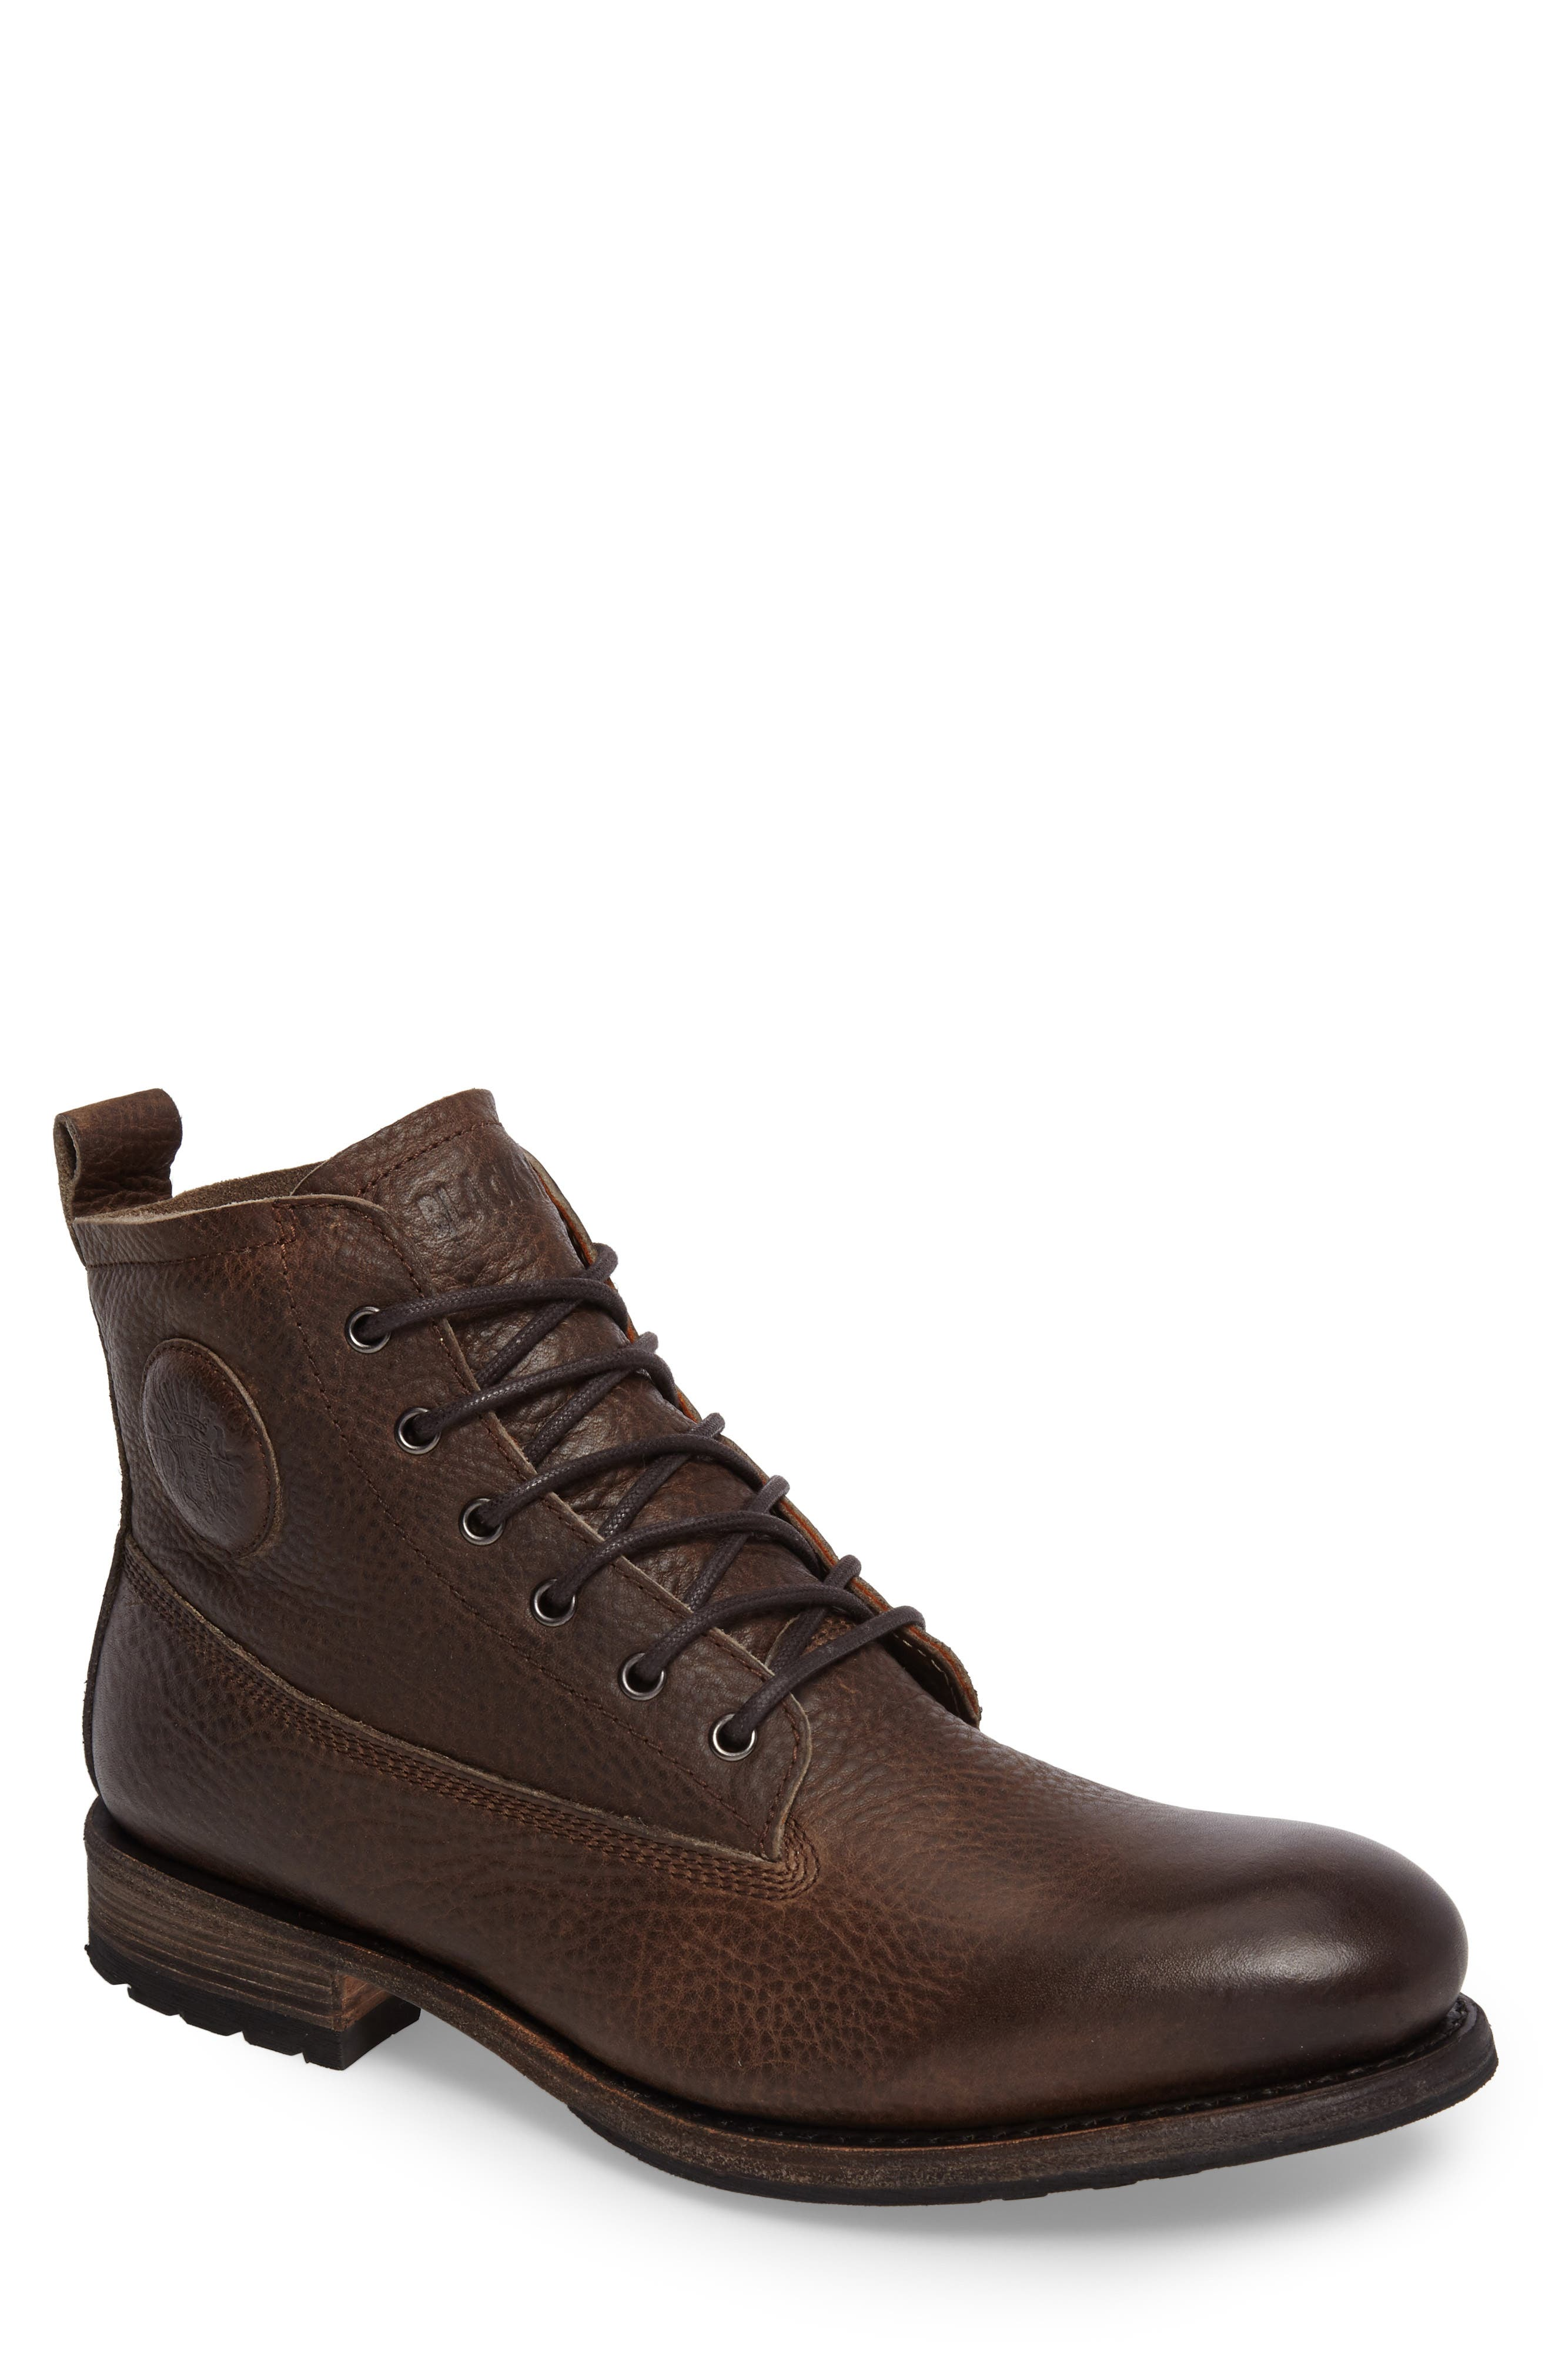 'GM 09' Plain Toe Boot,                         Main,                         color, 061